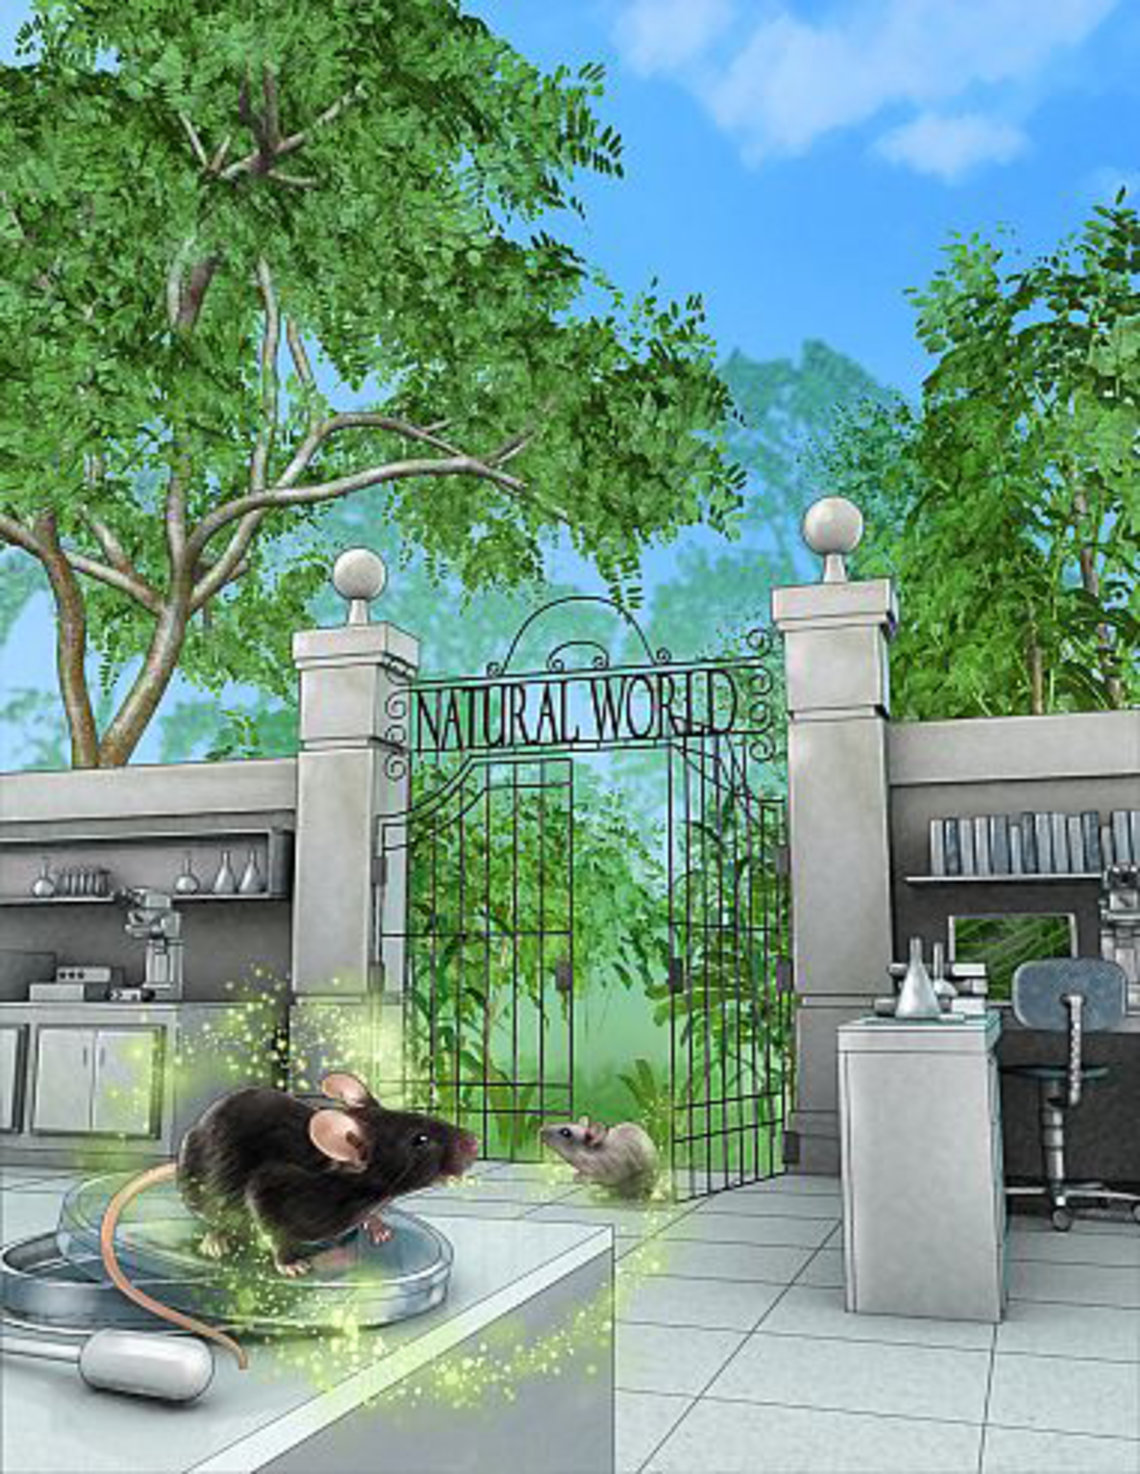 Illustration showing lab mice at the entrance of a park with an open gate marked Natural World